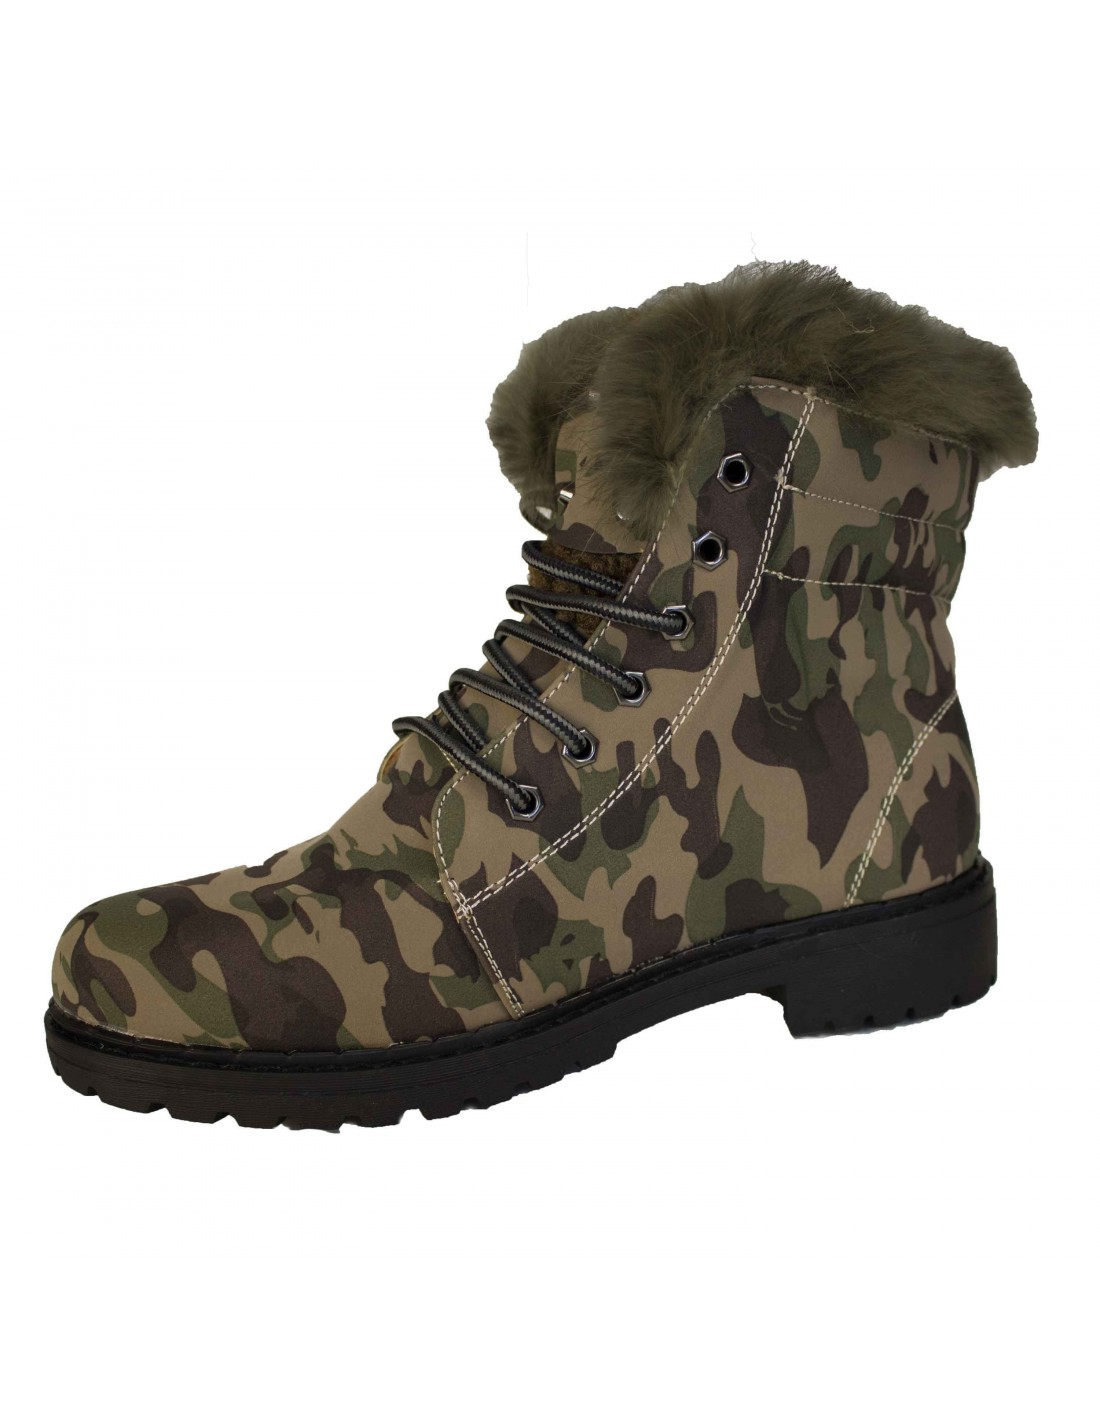 femme fourrée rangers Bottines army camouflage militaire nP8OX0wk